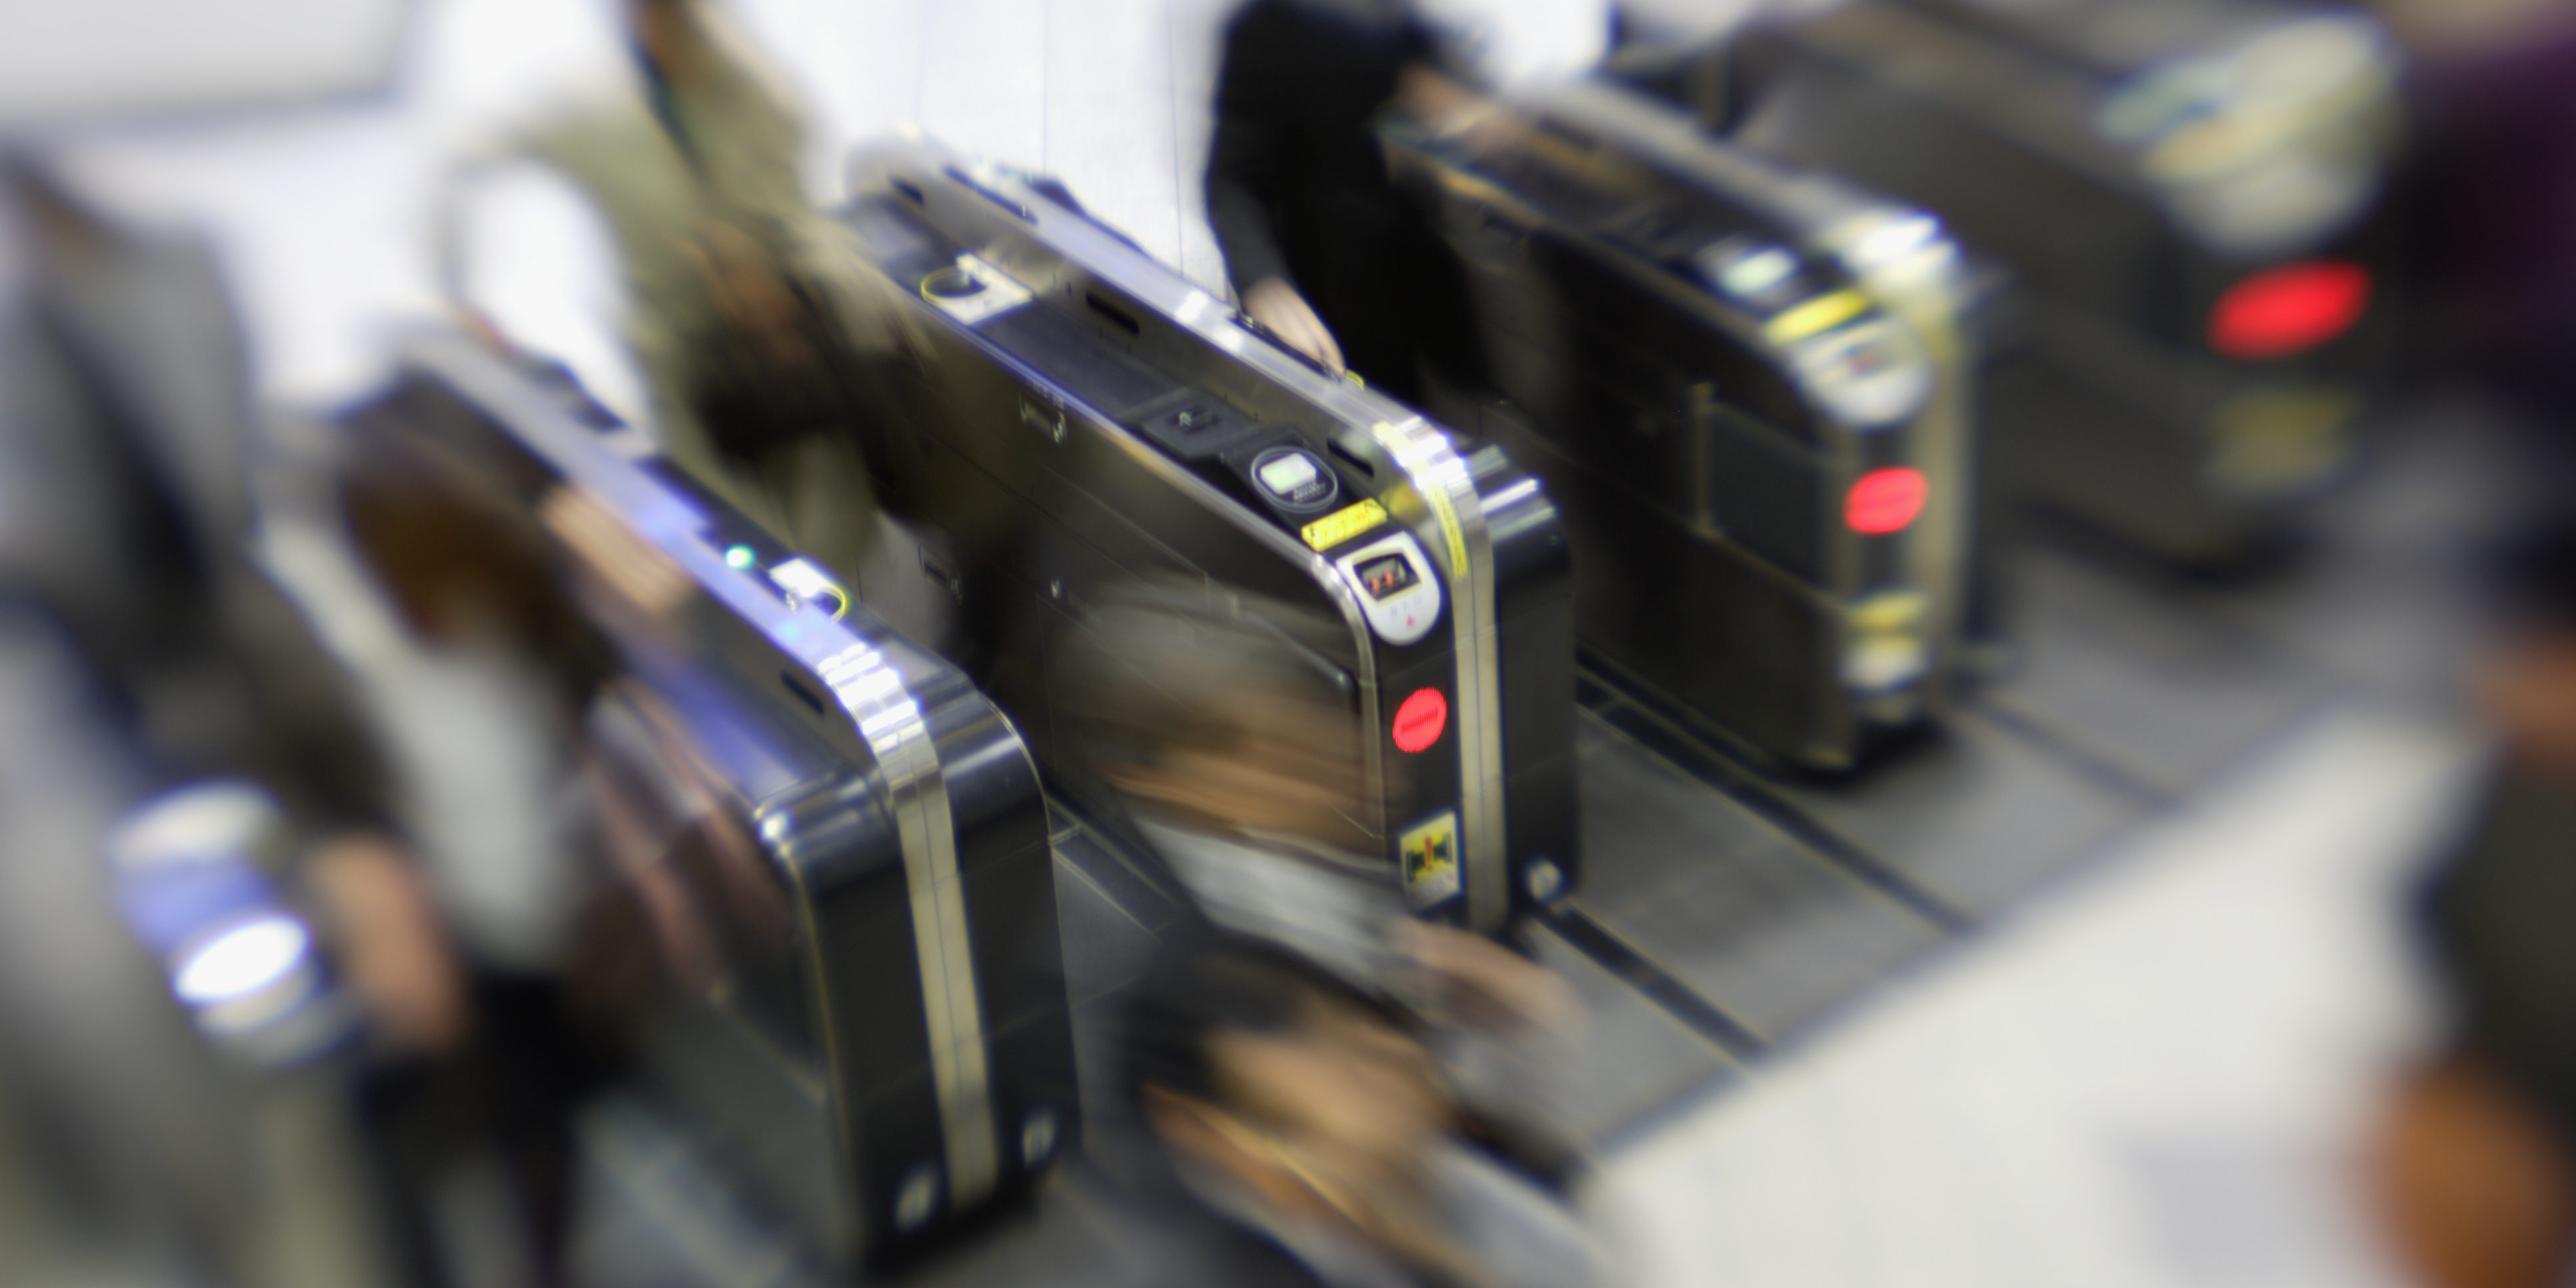 People passing through automatic ticket gate (blurred motion)